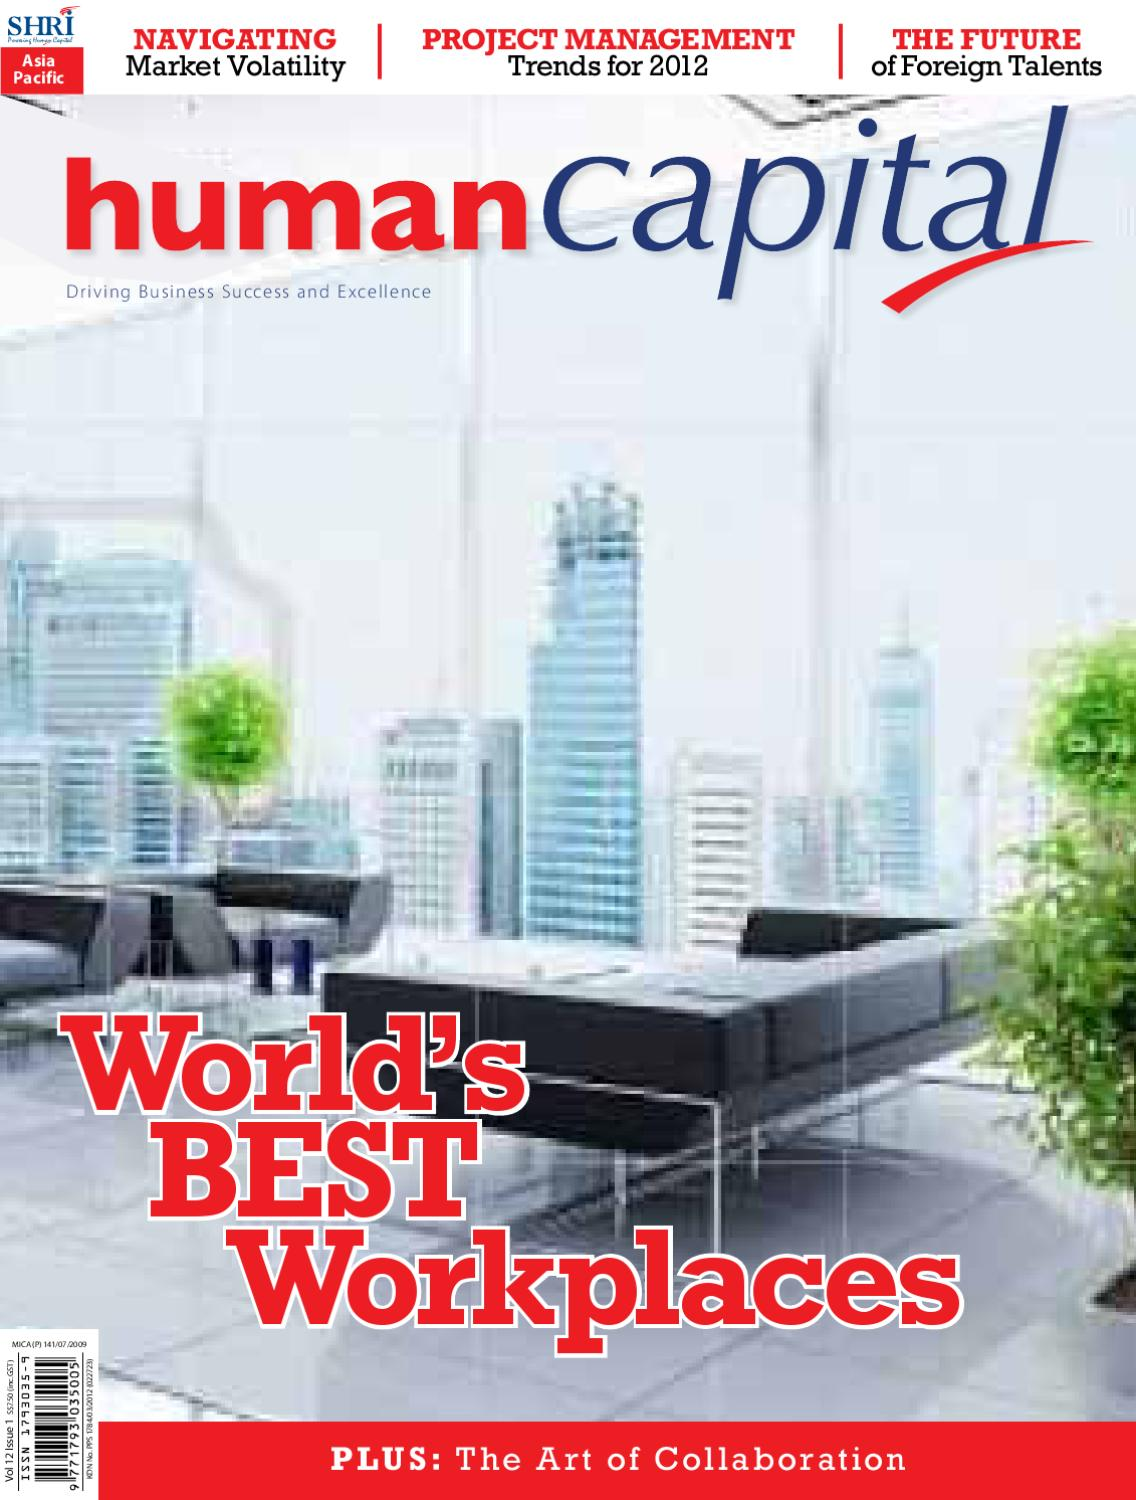 Human Capital Volume 12 Issue 1 by People Trends - issuu